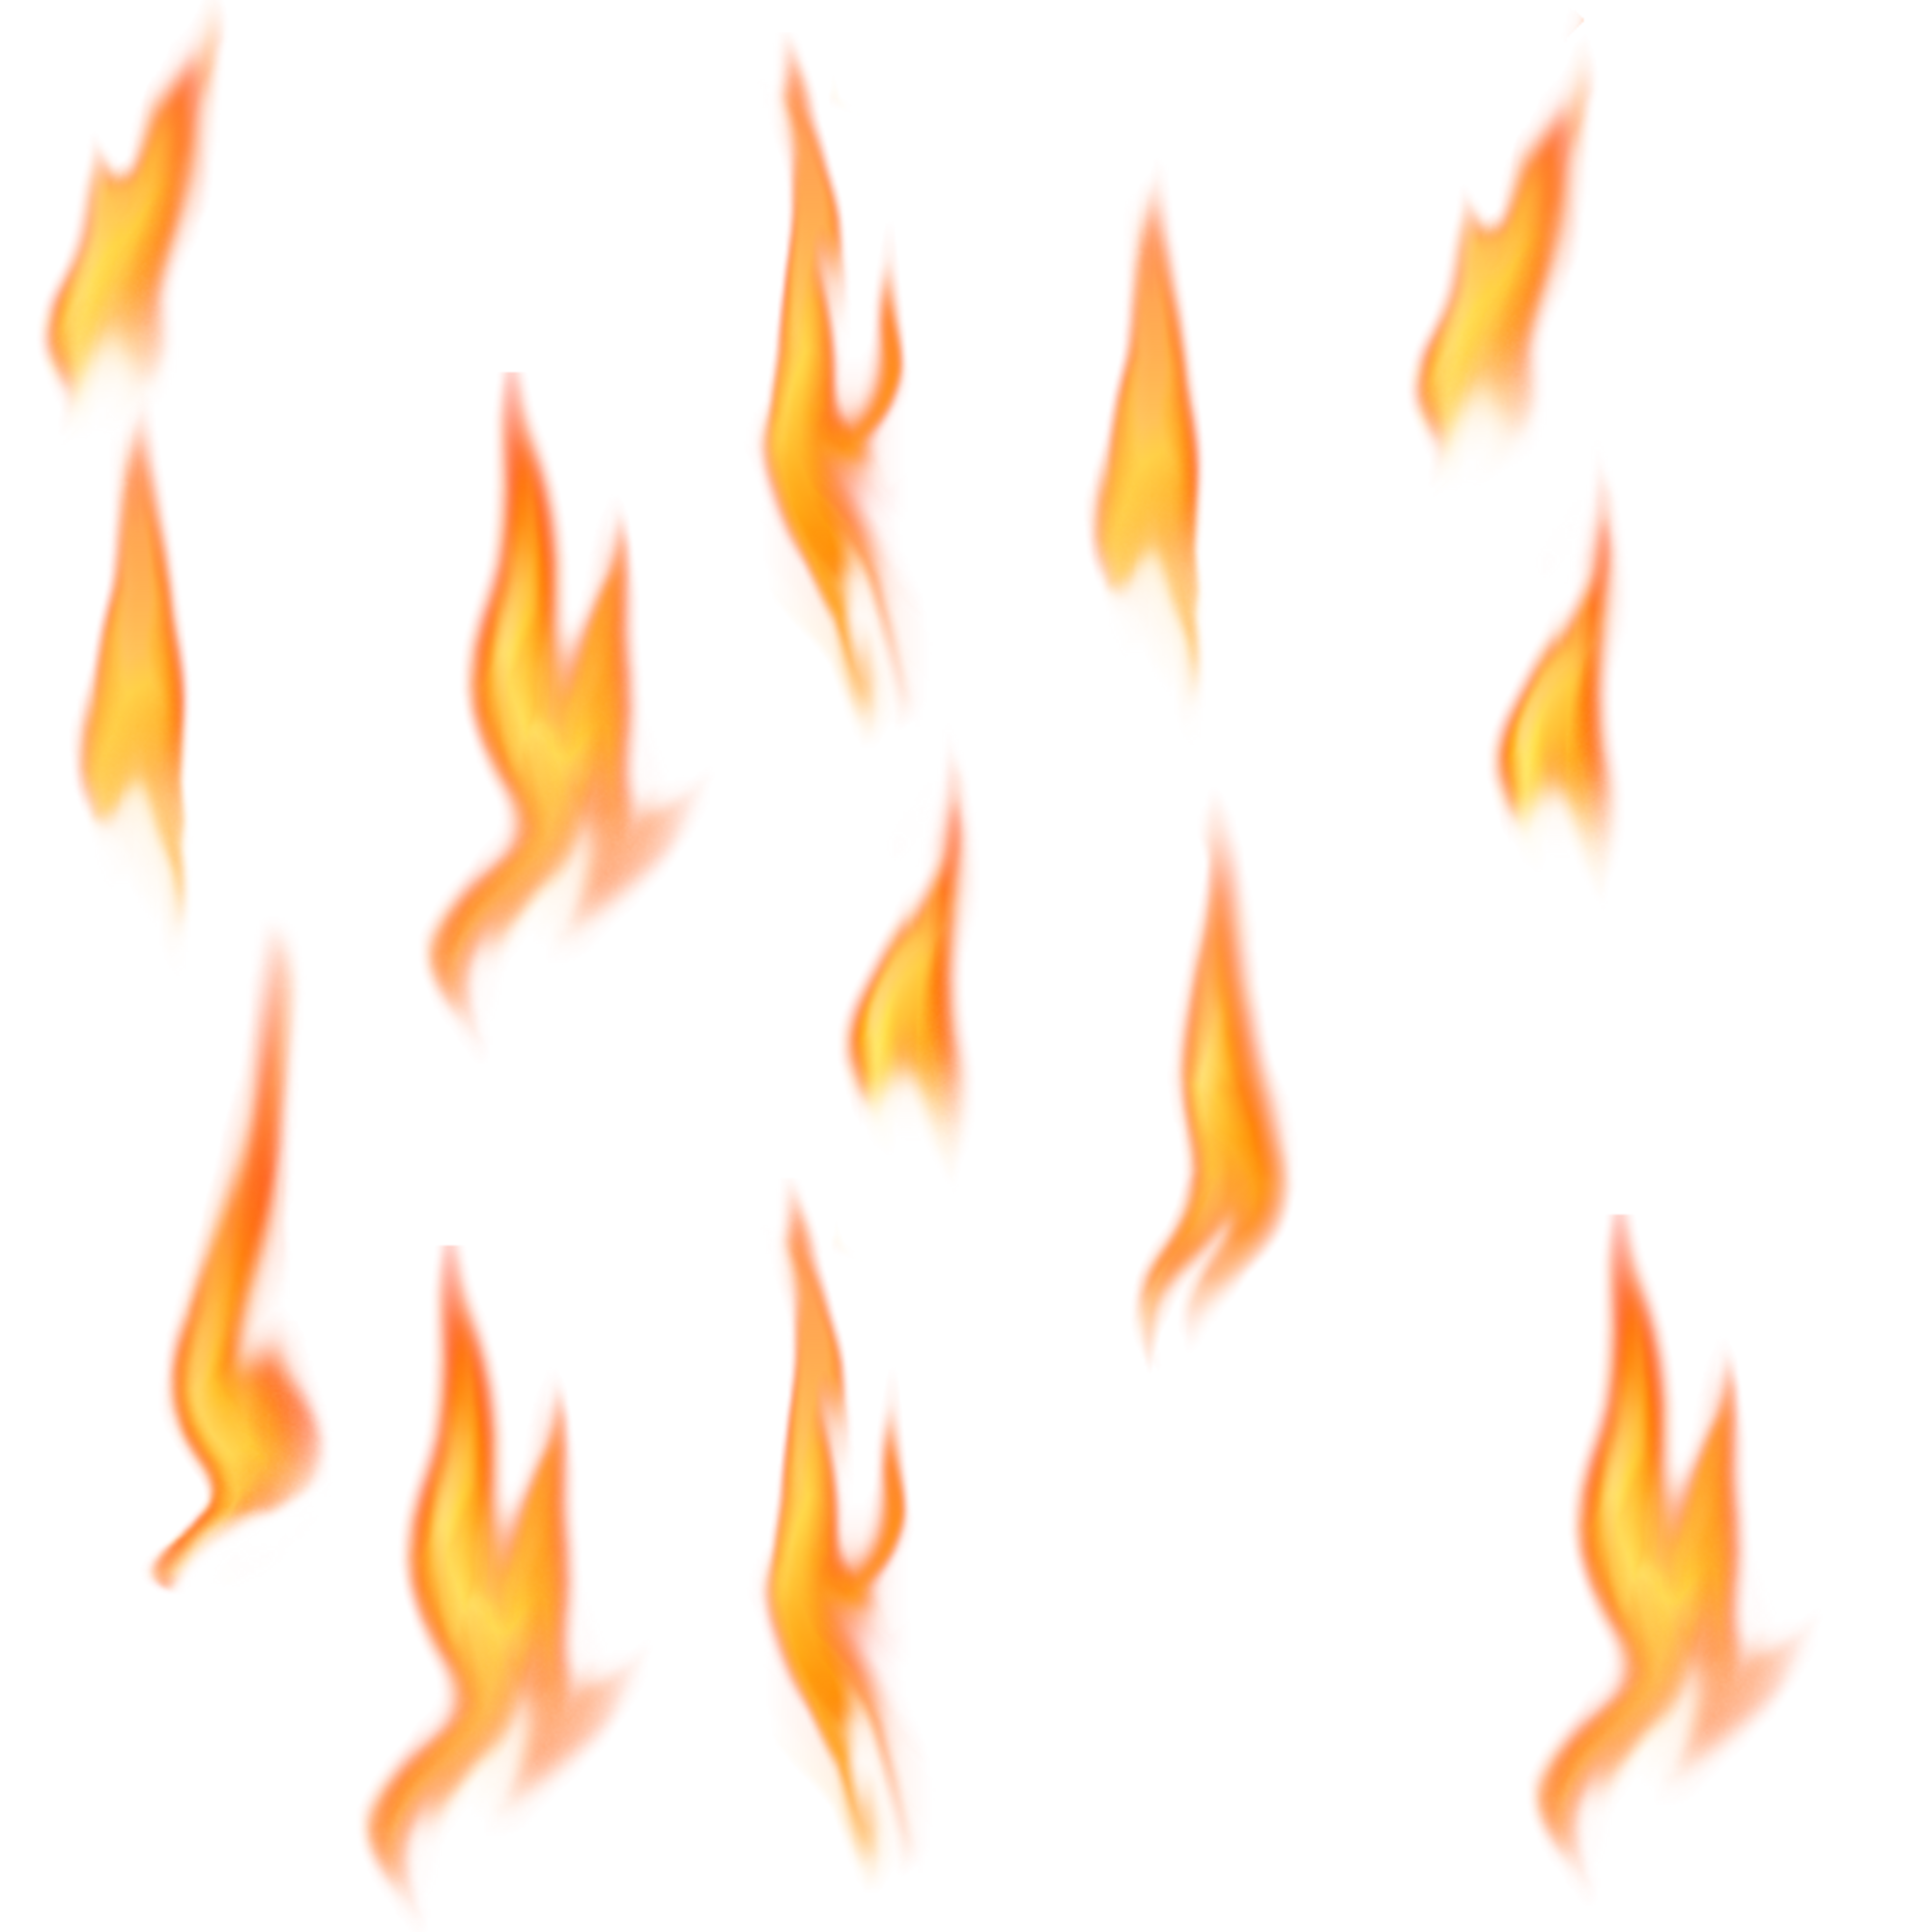 Fireplace clipart background. Fire flames photo transparentpng